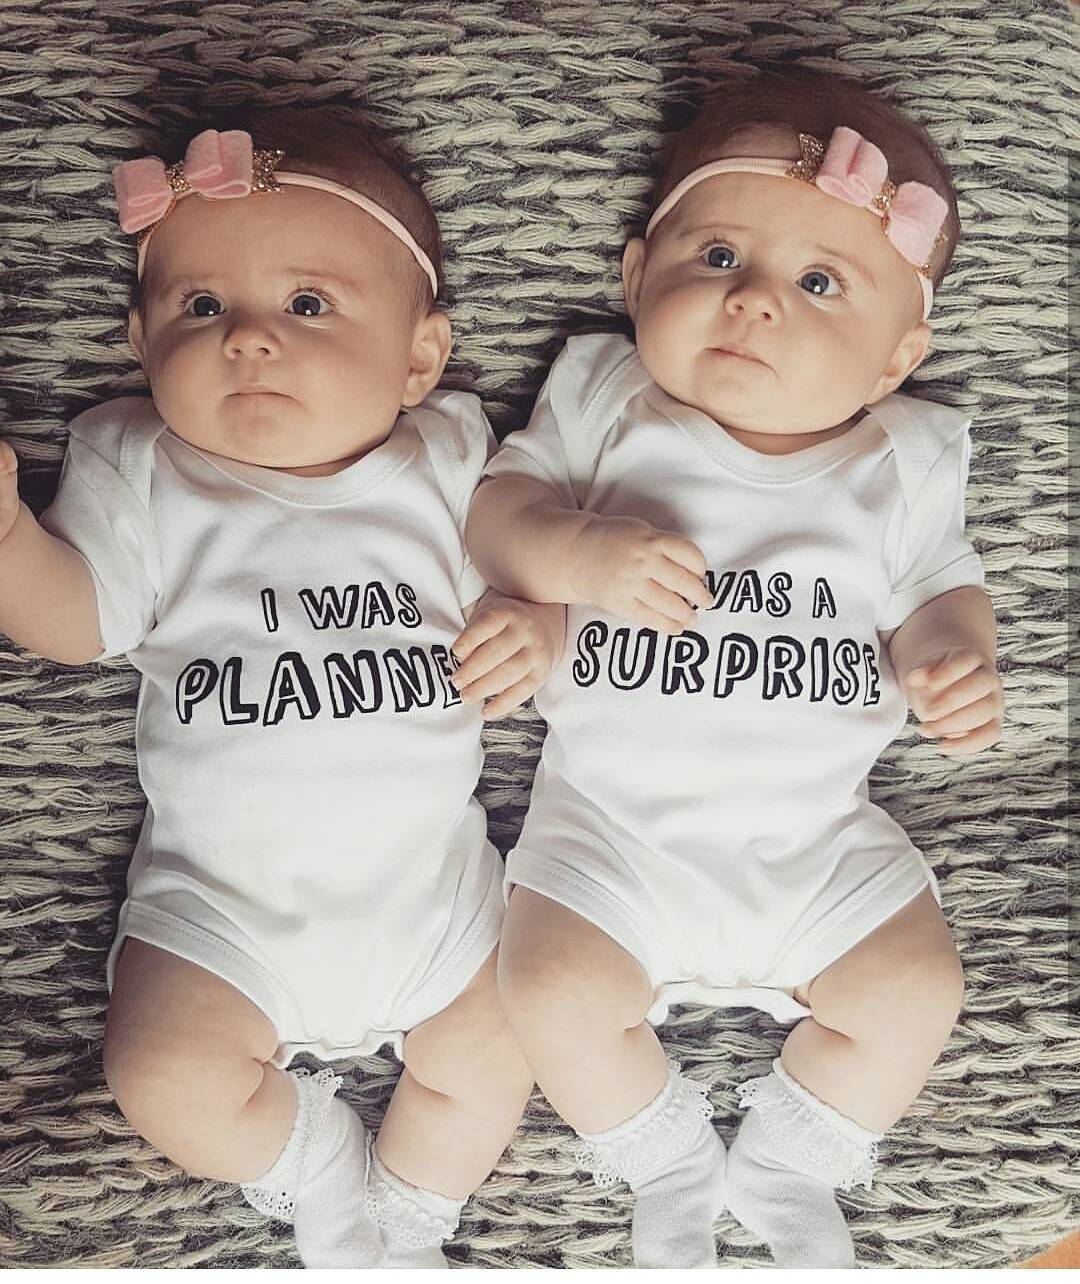 0c6763e3ec8fa US $2.99 25% OFF|Newborn Baby Brother Sister Twins Bodysuit Matching  Outfits Set Cotton Children Clothing Summer Costume White Letter Bodysuits  in ...